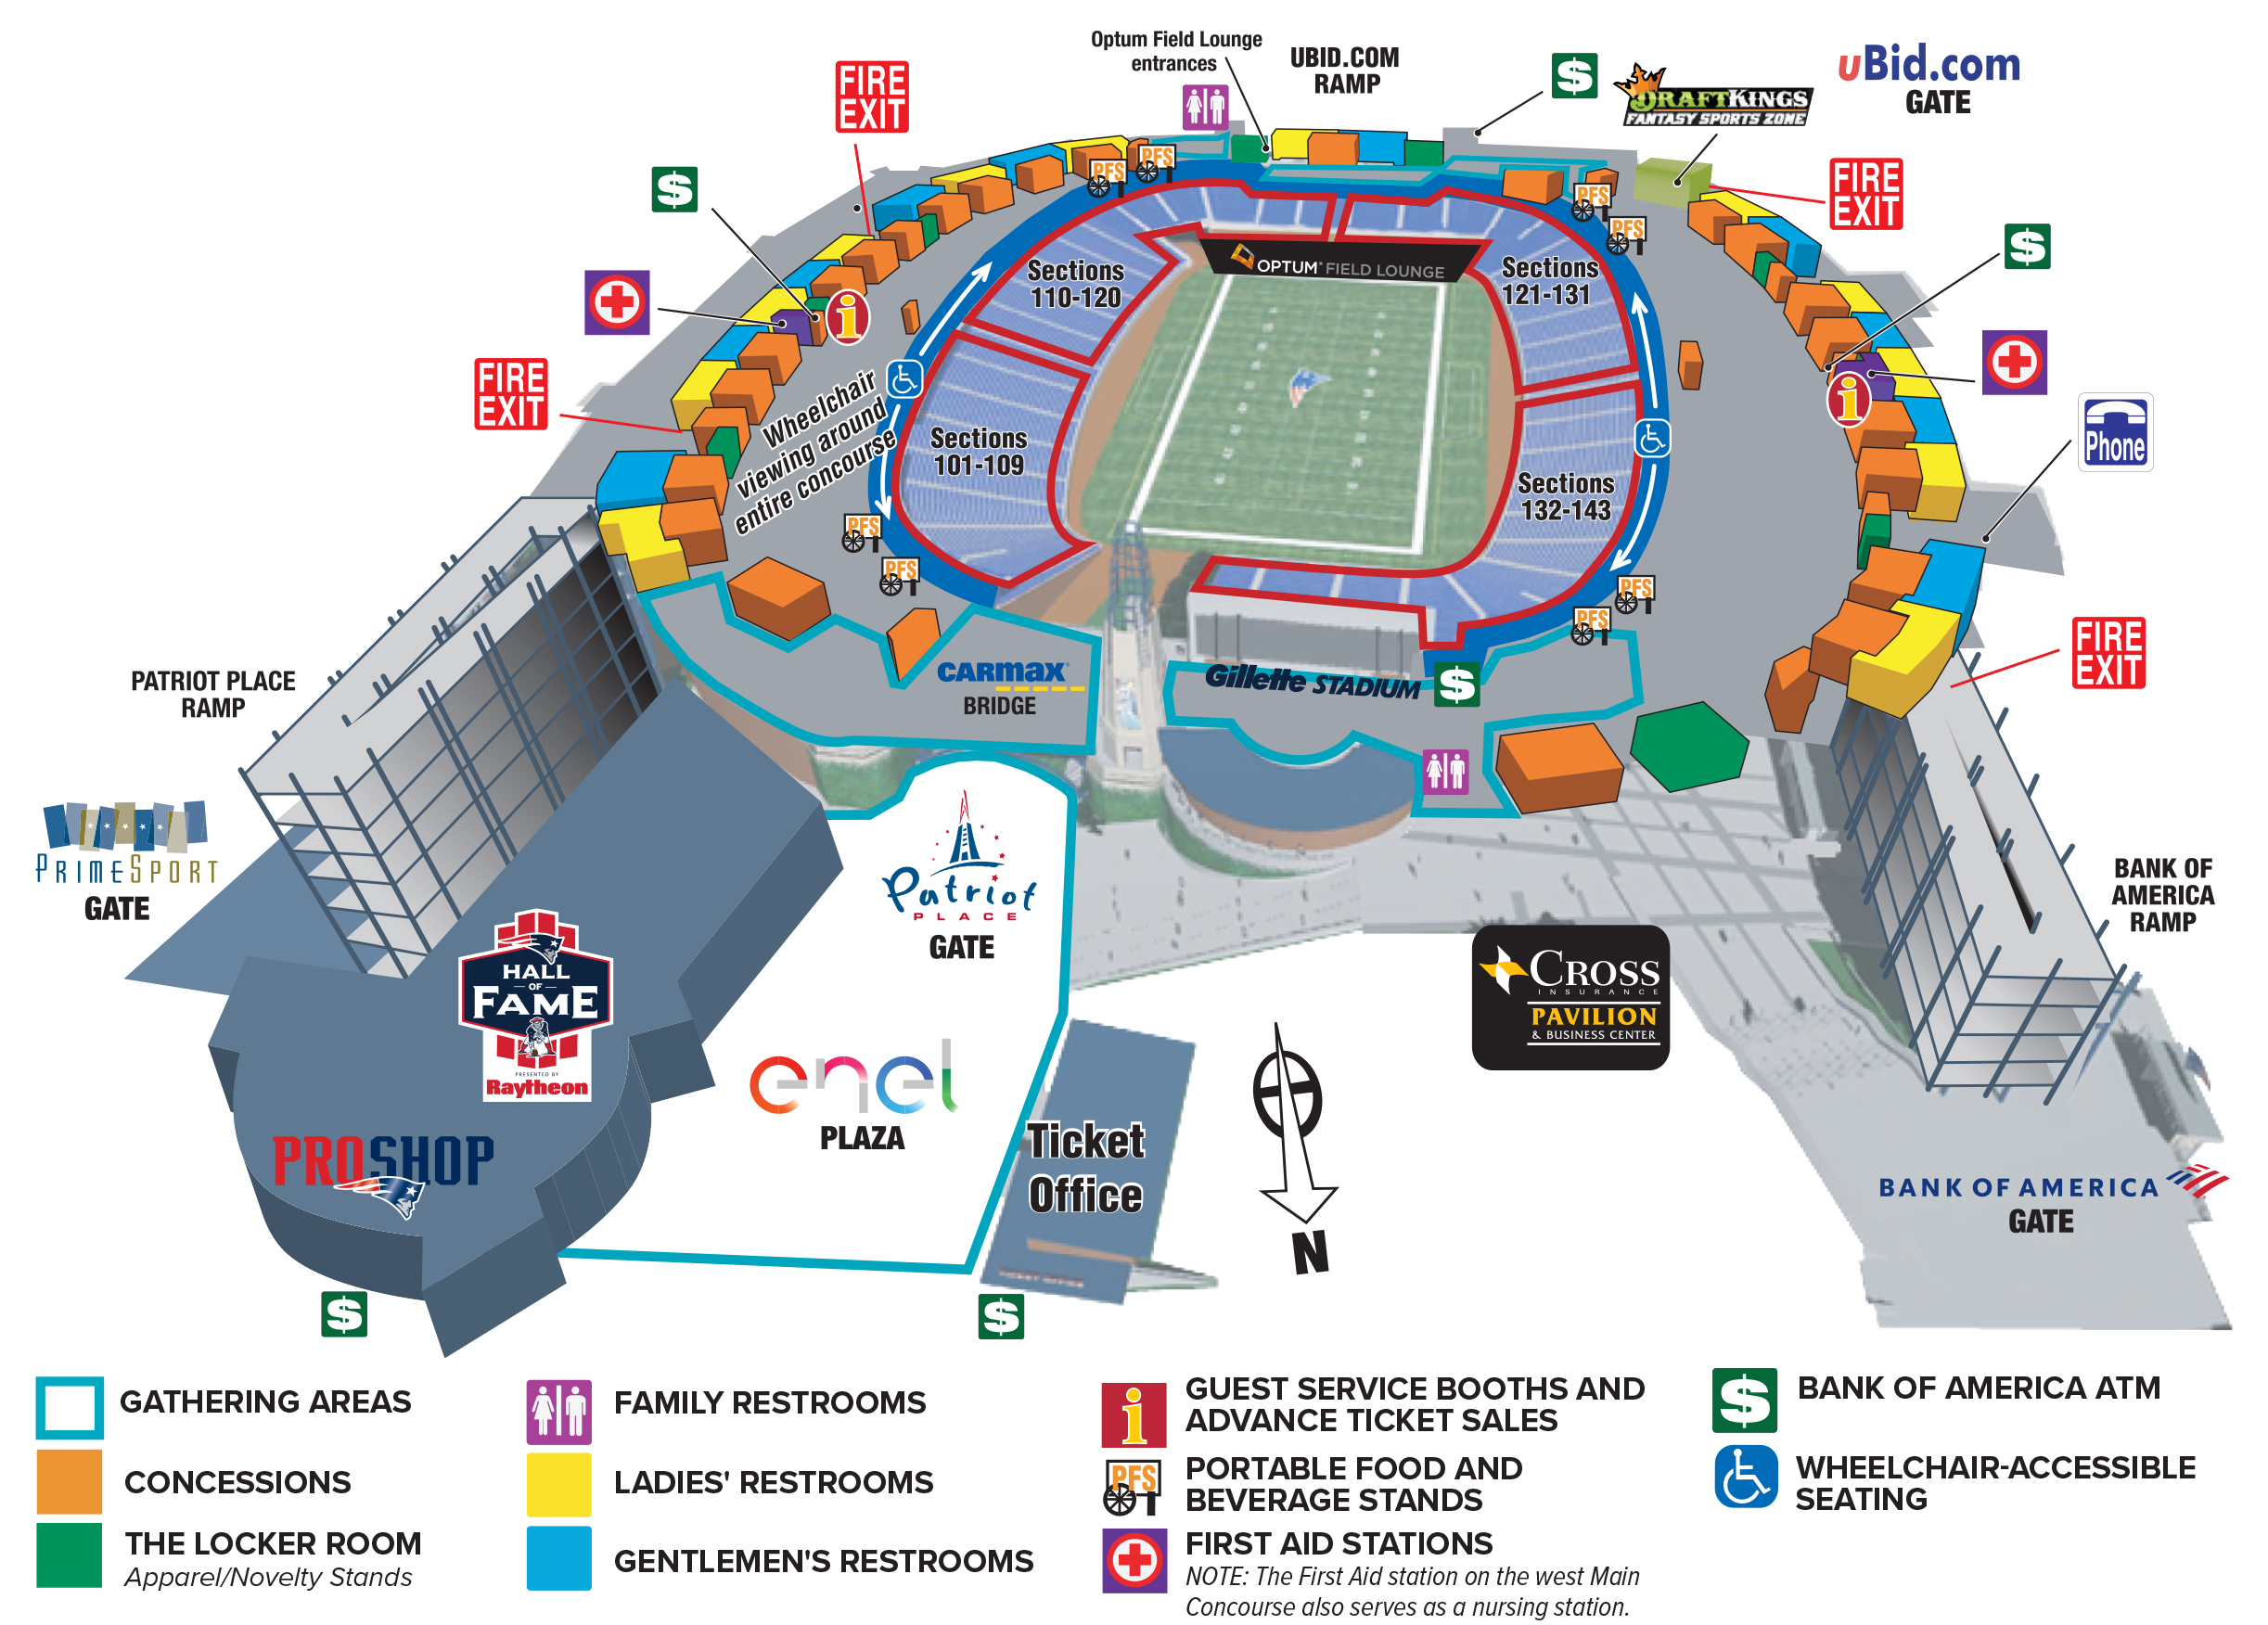 Seating Charts & Maps - Gillette Stadium